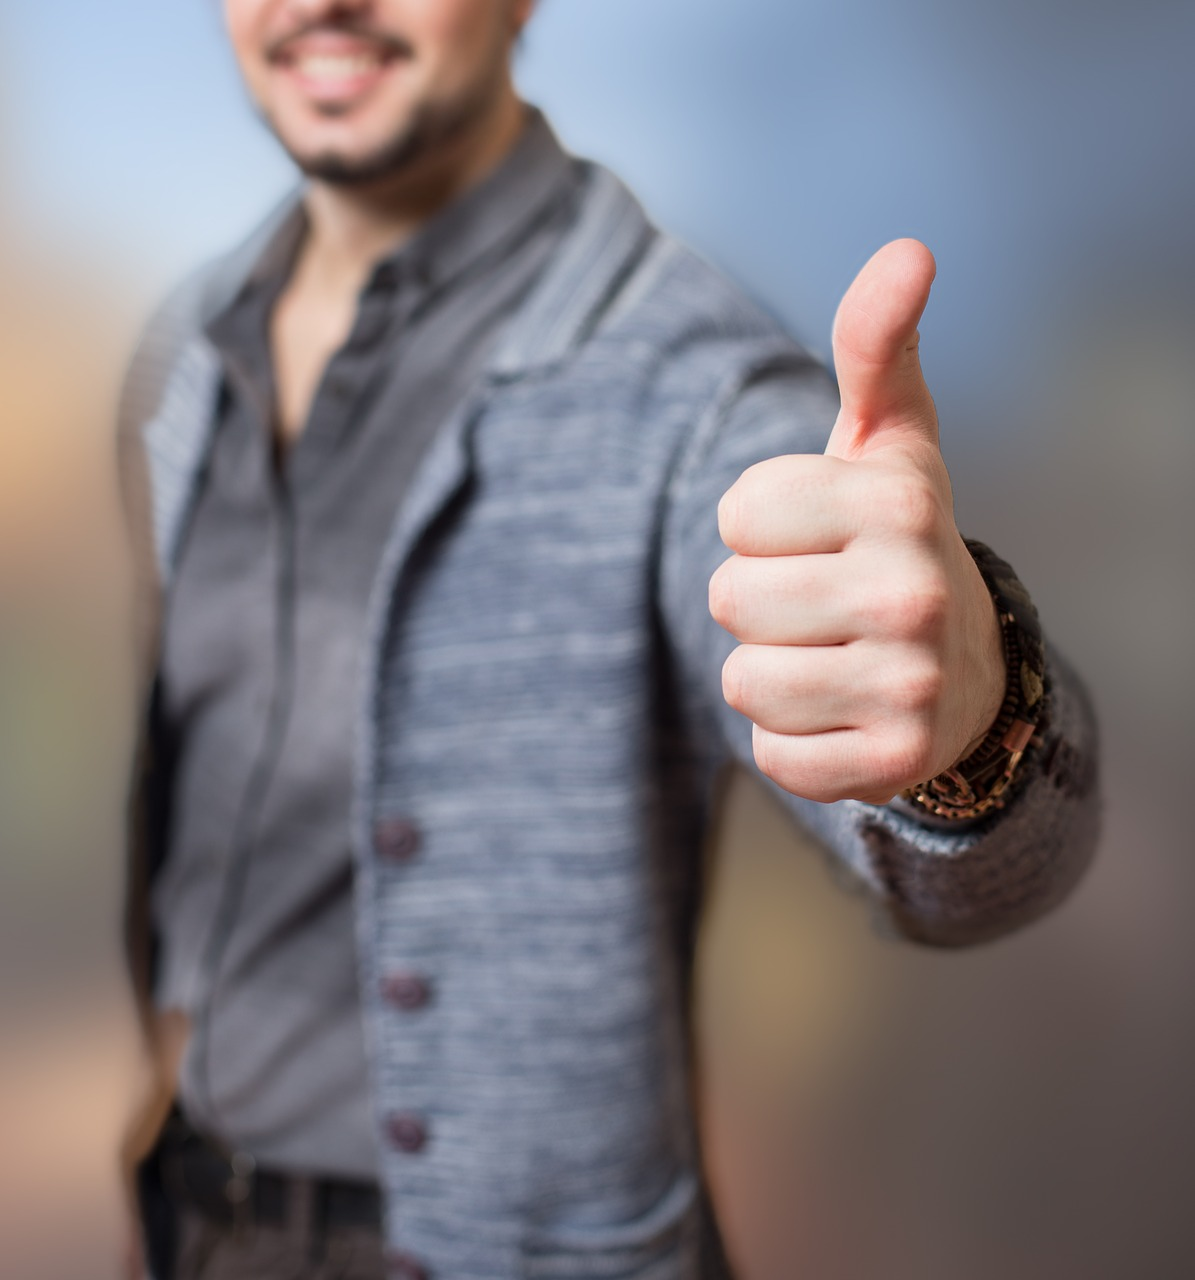 thumbs up, success, approval